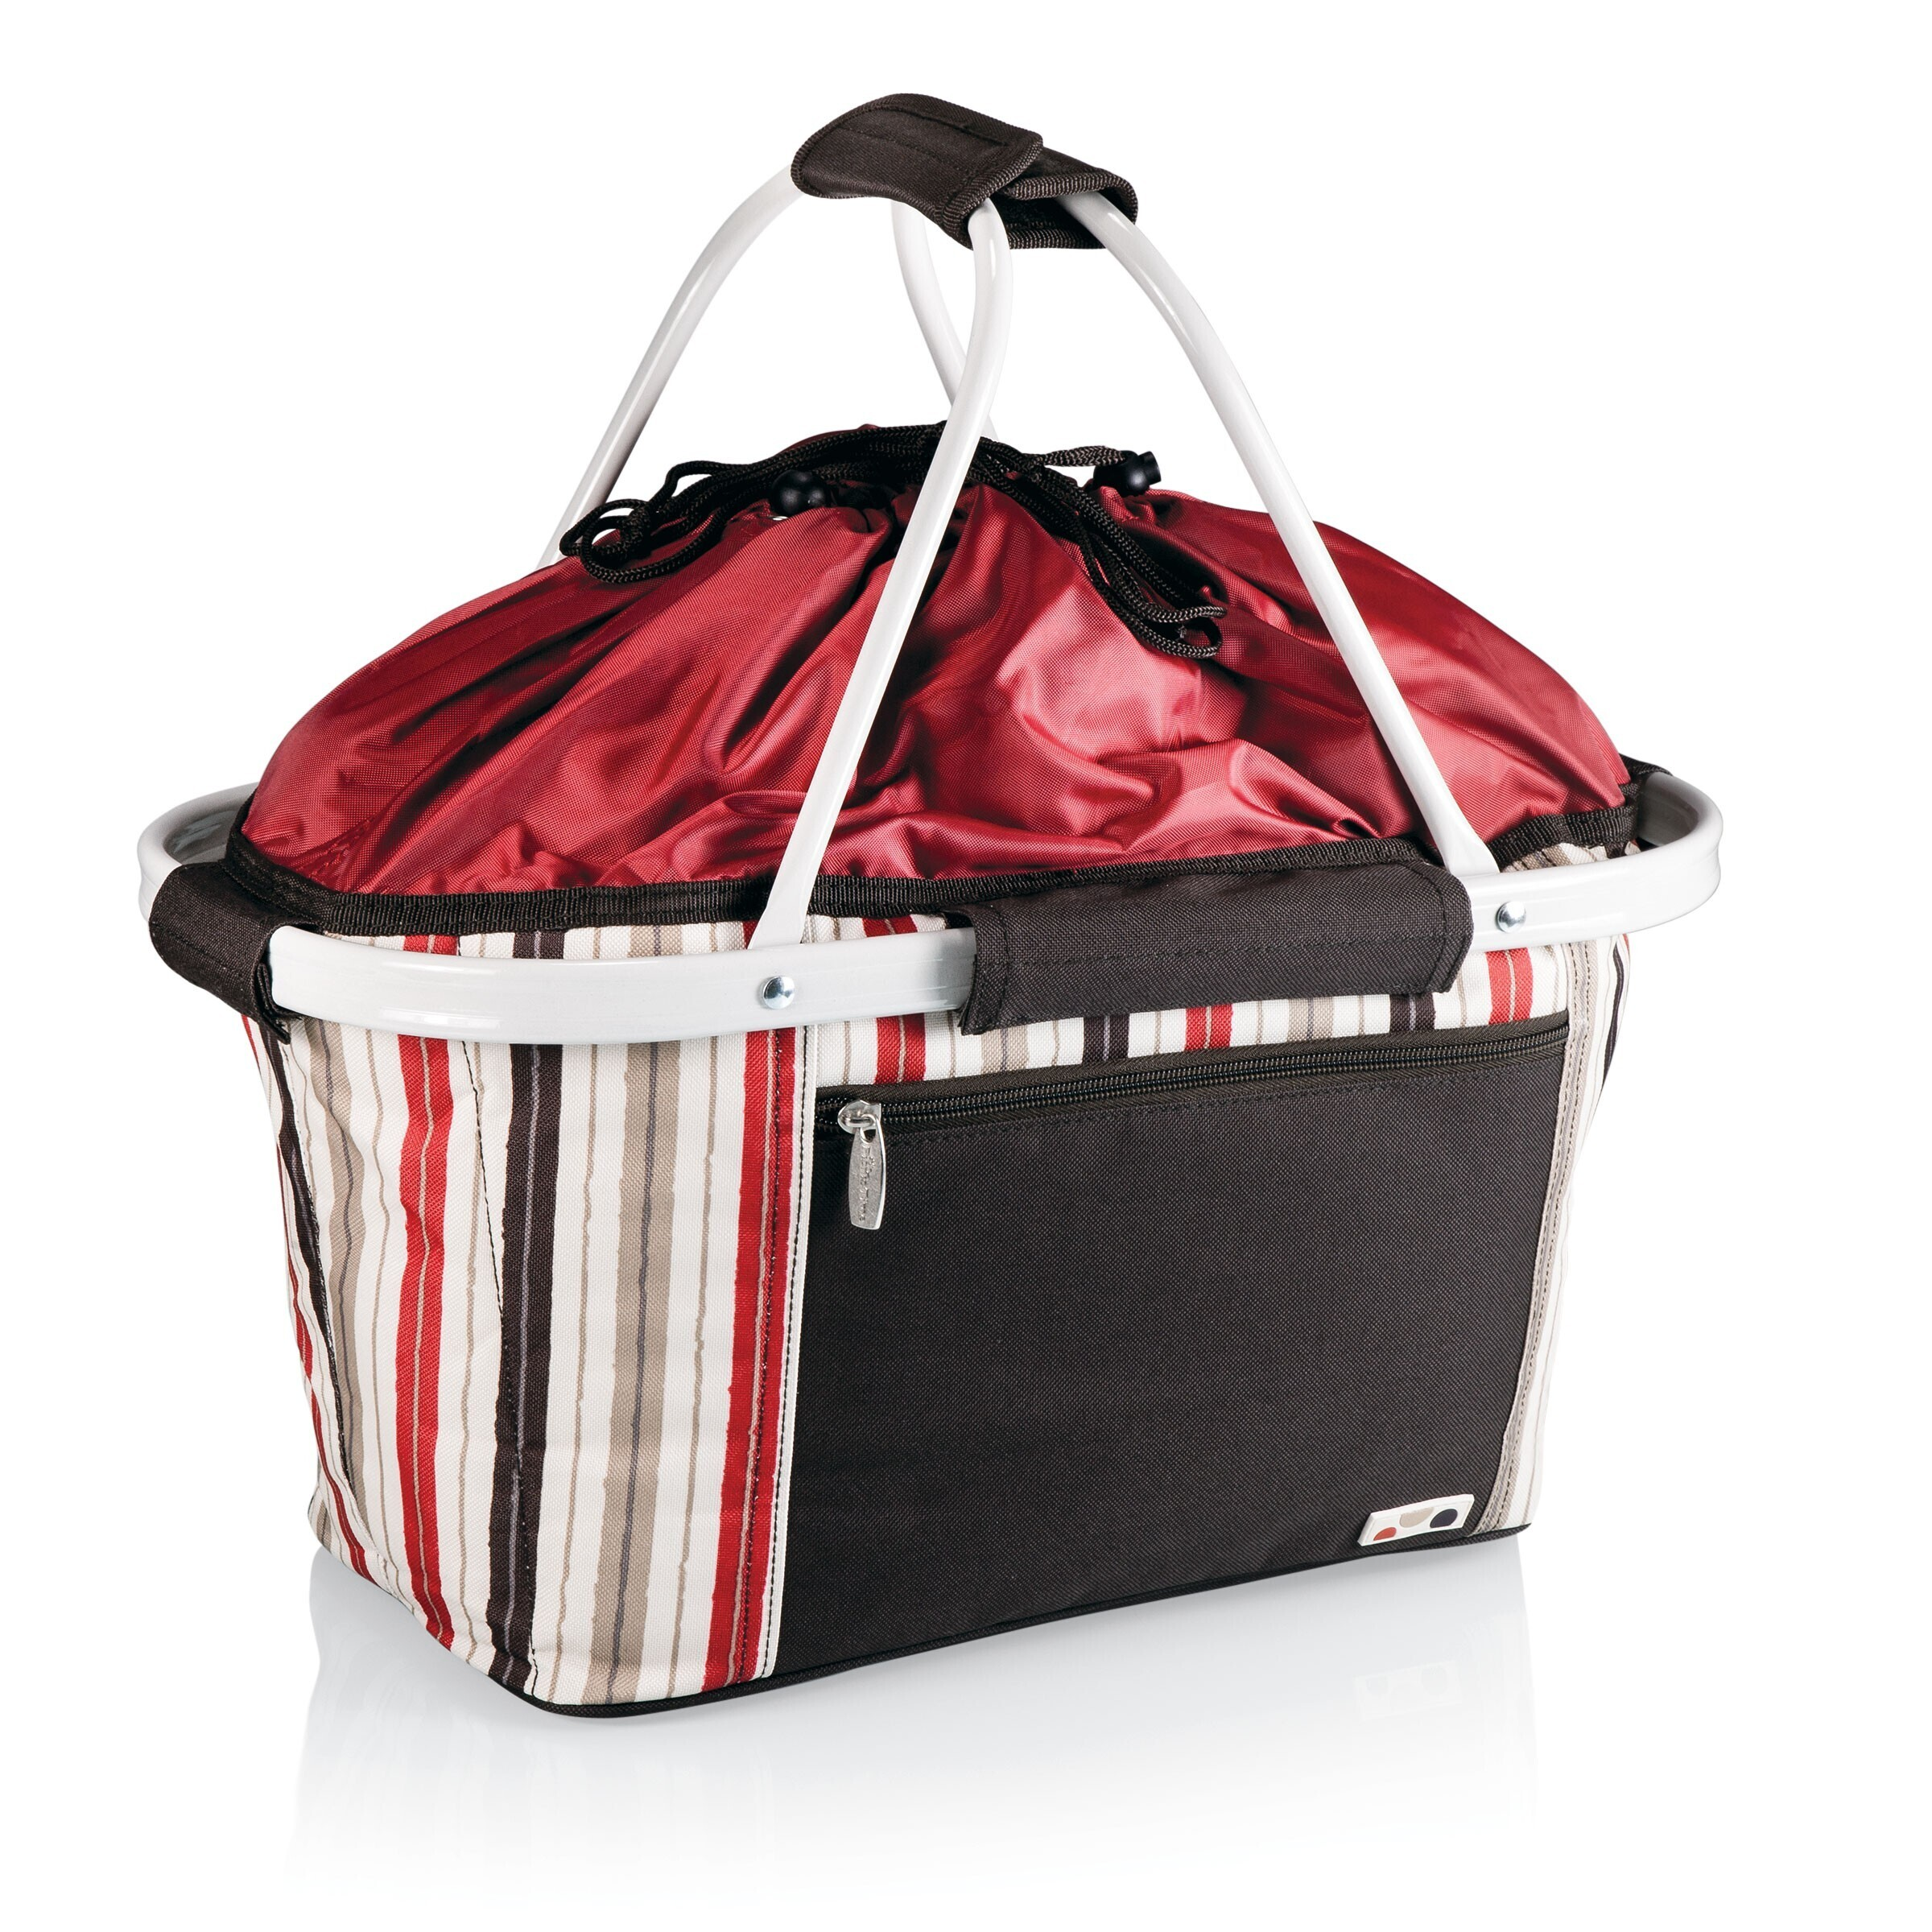 Metro® Insulated Cooler Picnic Basket - Moka Collection